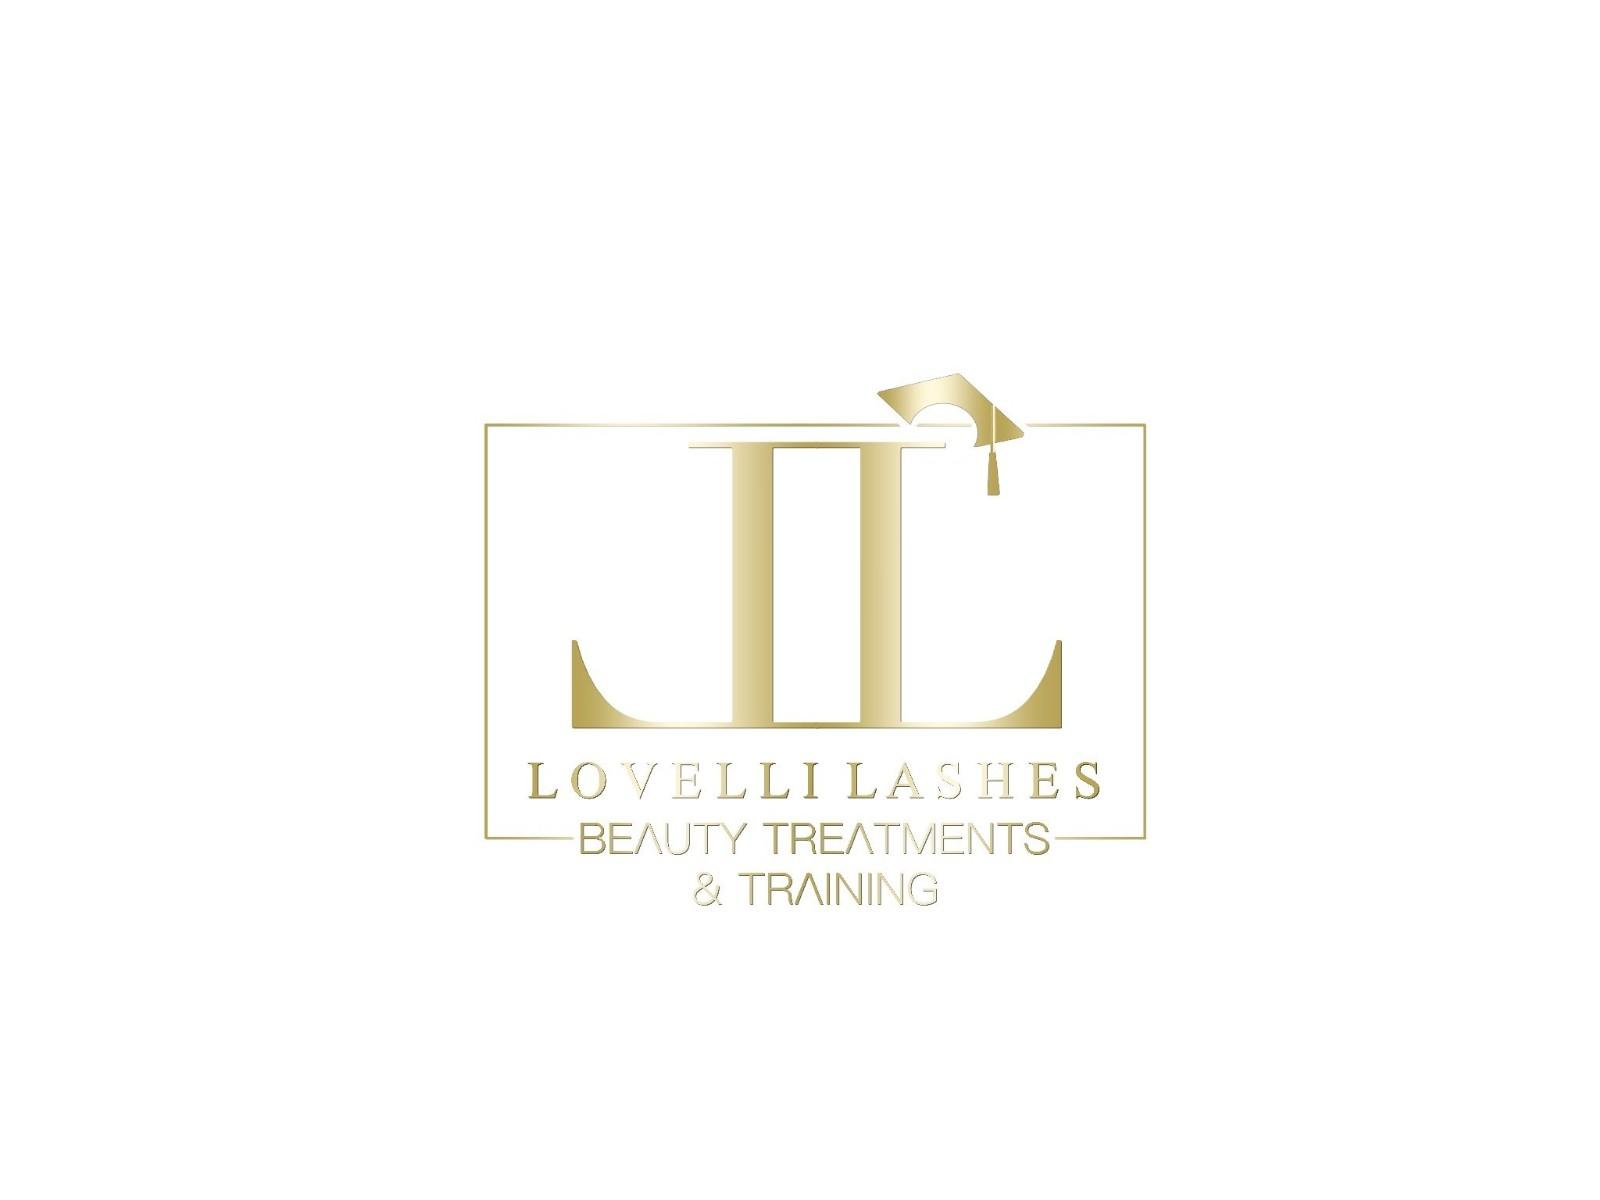 Lovelli Lashes Brows and Training logo